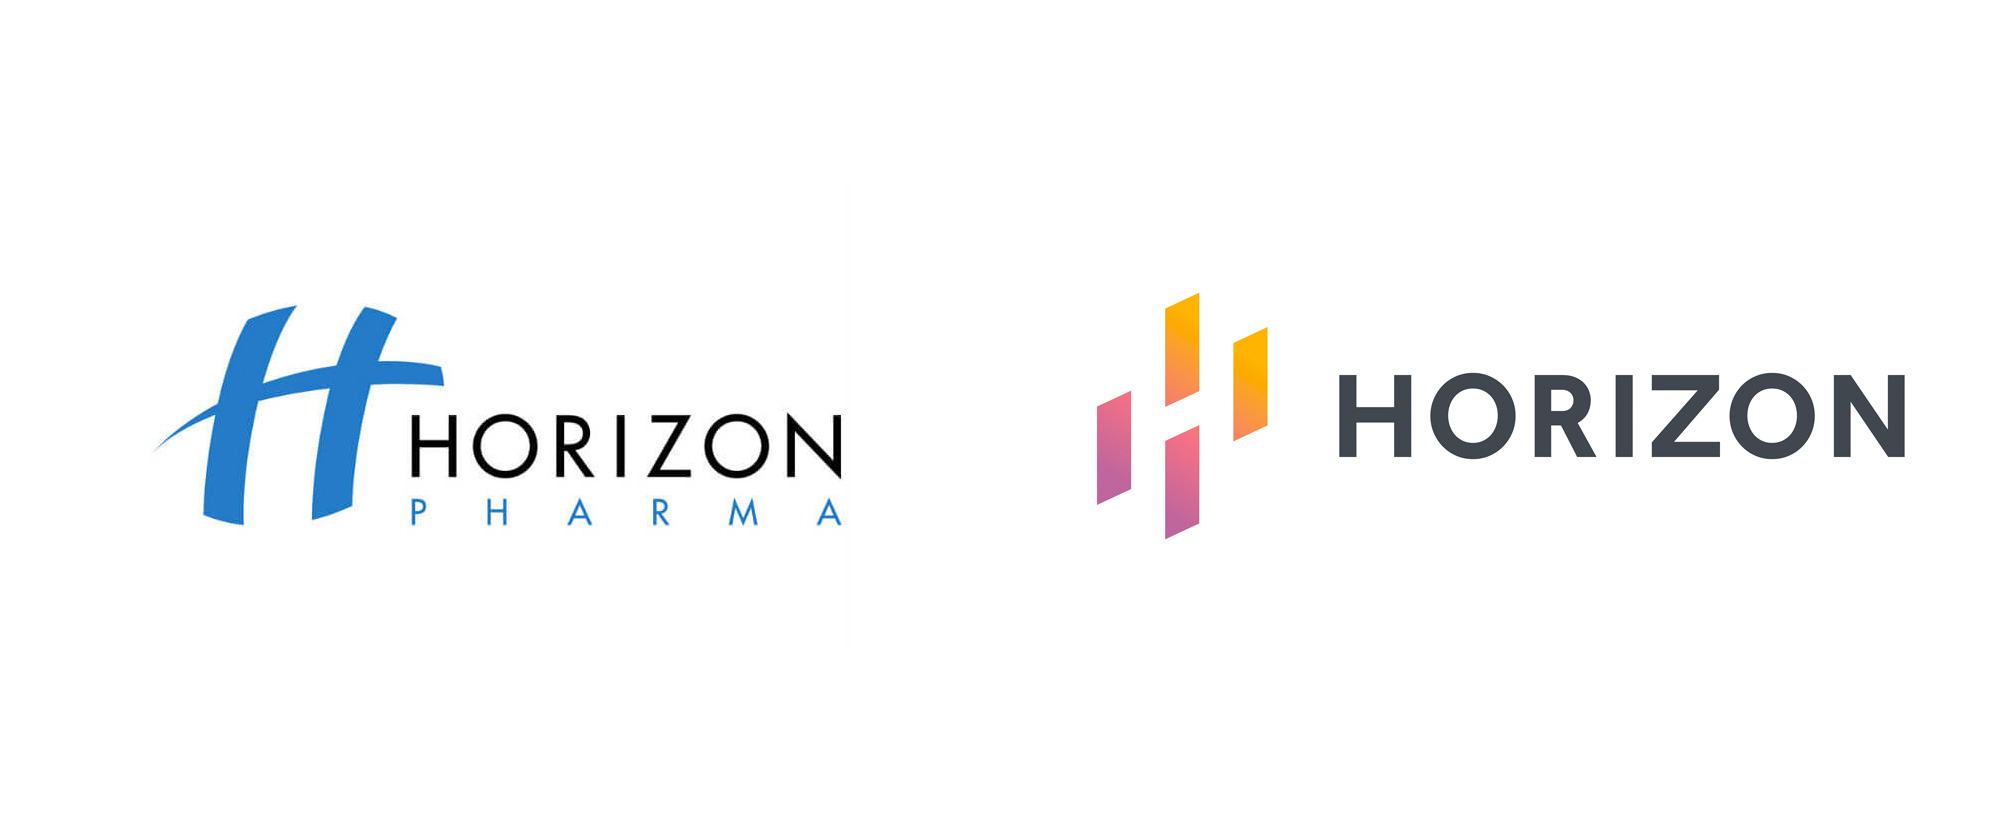 New Logo and Identity for Horizon Therapeutics by W2O